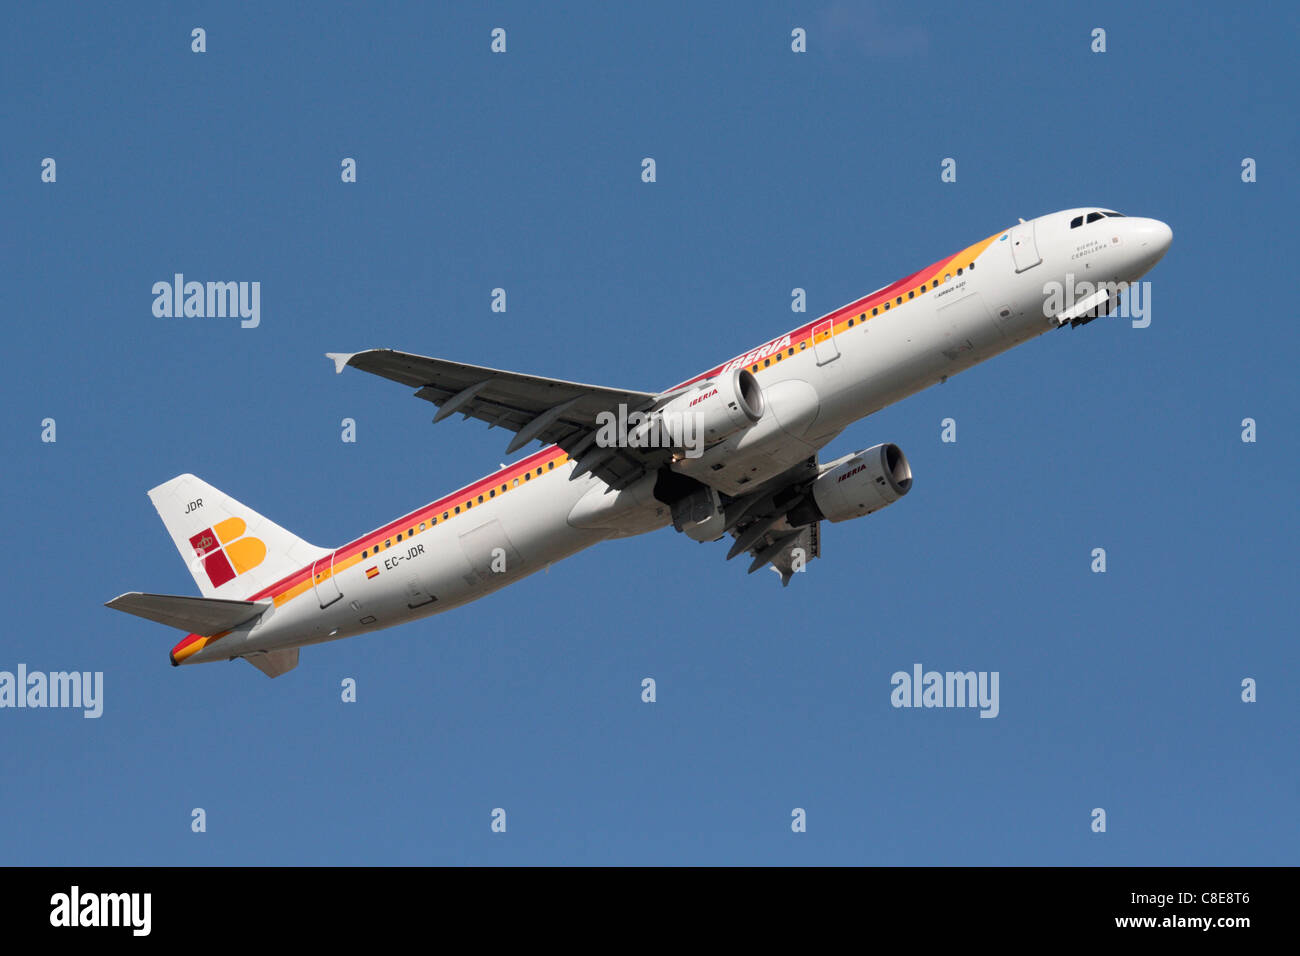 Iberia Airbus A321 on takeoff against a clear blue sky - Stock Image